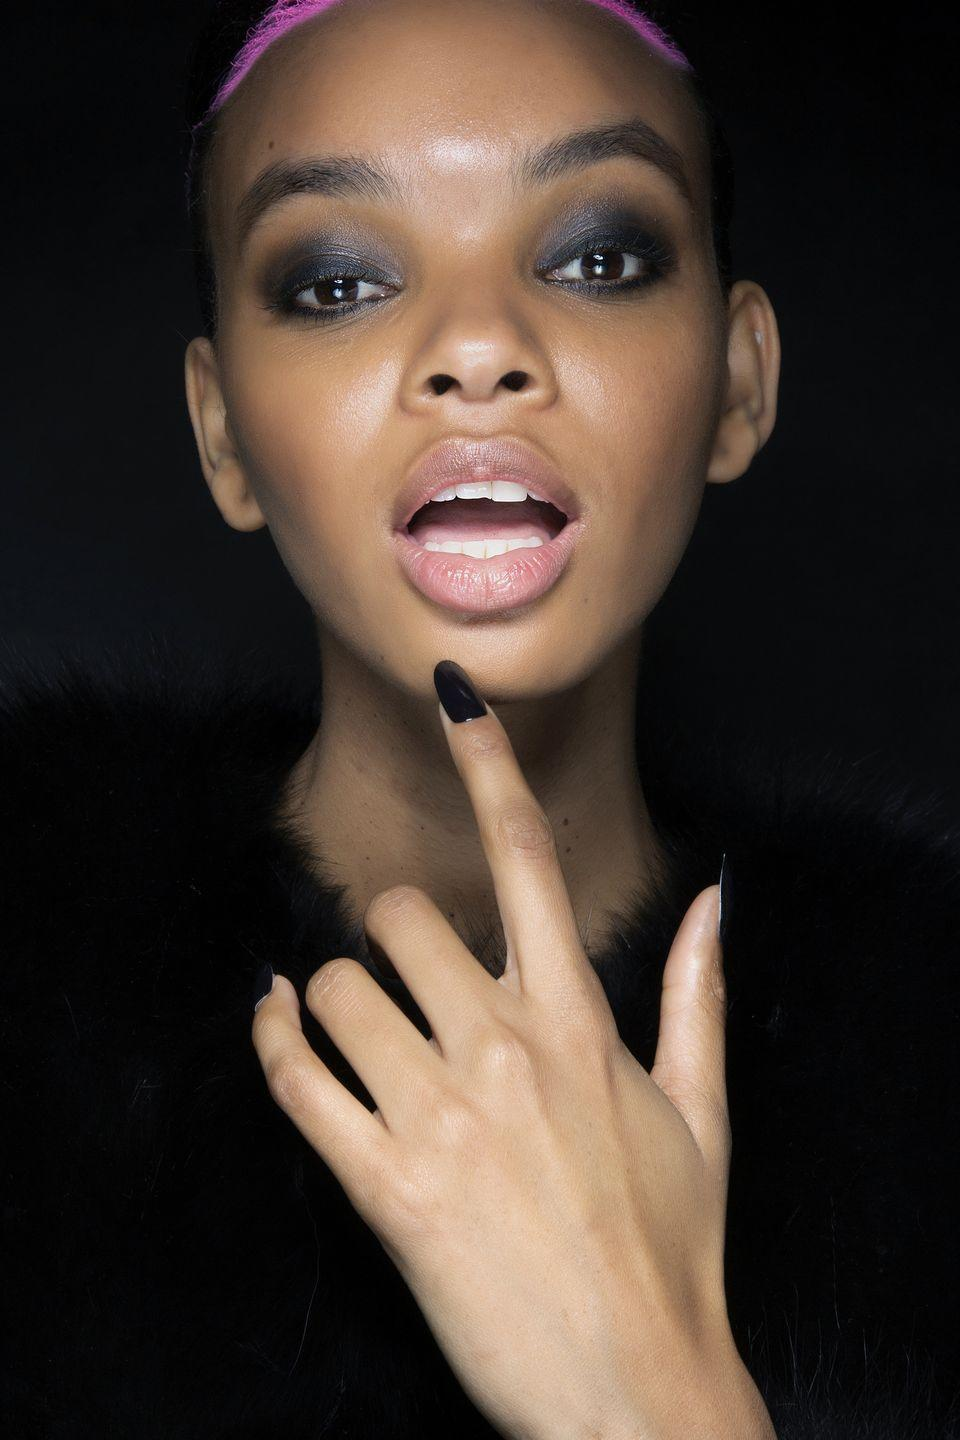 """<p>Nothing makes a statement like an all-black manicure. Done in high gloss or matte, a black manicure is chic and sophisticated with a little edge. Here, a model backstage at Philipp Plein with almond-shaped black nails.</p><p>Essie nail polish in Licorice, $8.99, <a href=""""https://www.target.com/p/essie-nail-polish-0-46-fl-oz/-/A-53827187?preselect=13249434#lnk=sametab"""" rel=""""nofollow noopener"""" target=""""_blank"""" data-ylk=""""slk:target.com"""" class=""""link rapid-noclick-resp"""">target.com</a>. <a class=""""link rapid-noclick-resp"""" href=""""https://www.target.com/p/essie-nail-polish-0-46-fl-oz/-/A-53827187?preselect=13249434#lnk=sametab"""" rel=""""nofollow noopener"""" target=""""_blank"""" data-ylk=""""slk:SHOP"""">SHOP</a></p>"""